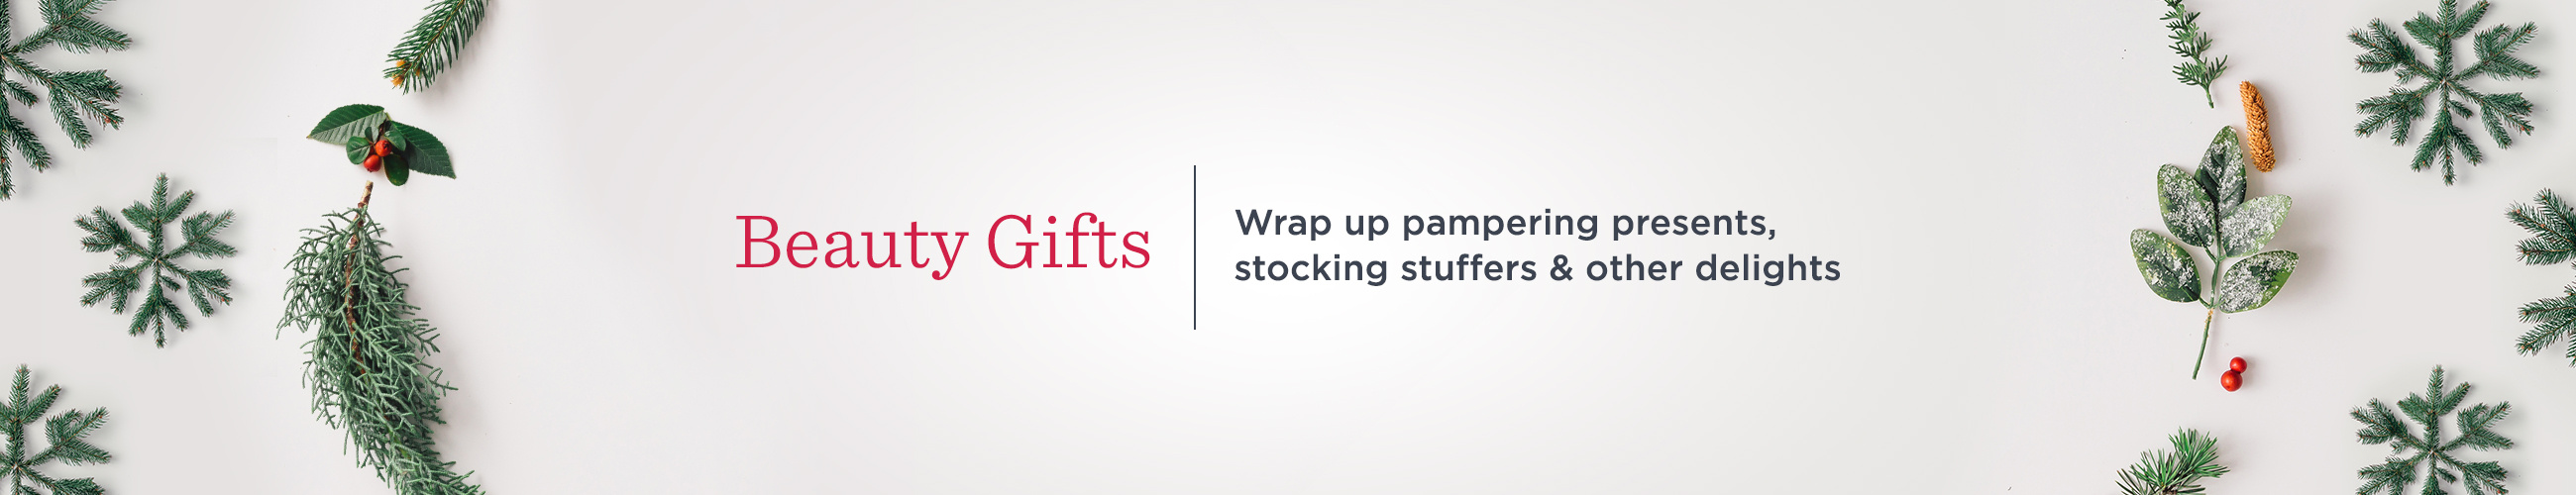 Beauty Gifts  Wrap up pampering presents, stocking stuffers & other delights